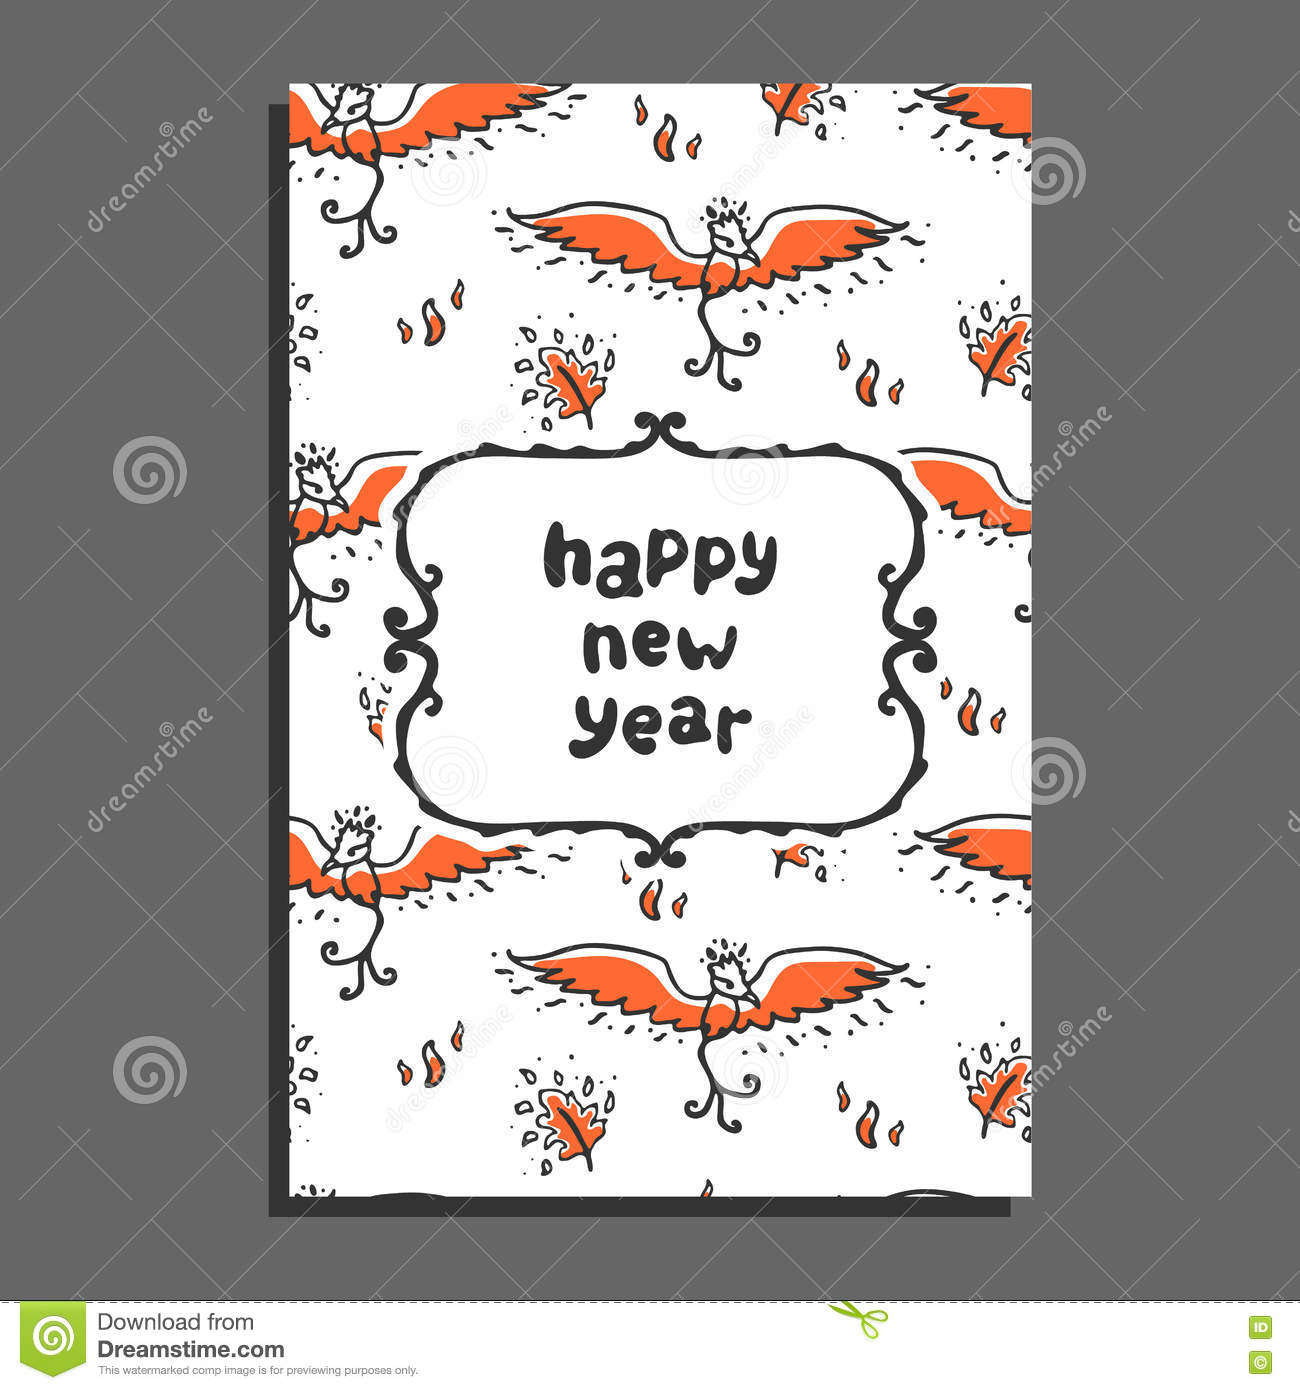 Happy New Year Greeting Card With Phoenix And Flames. Stock Vector ...